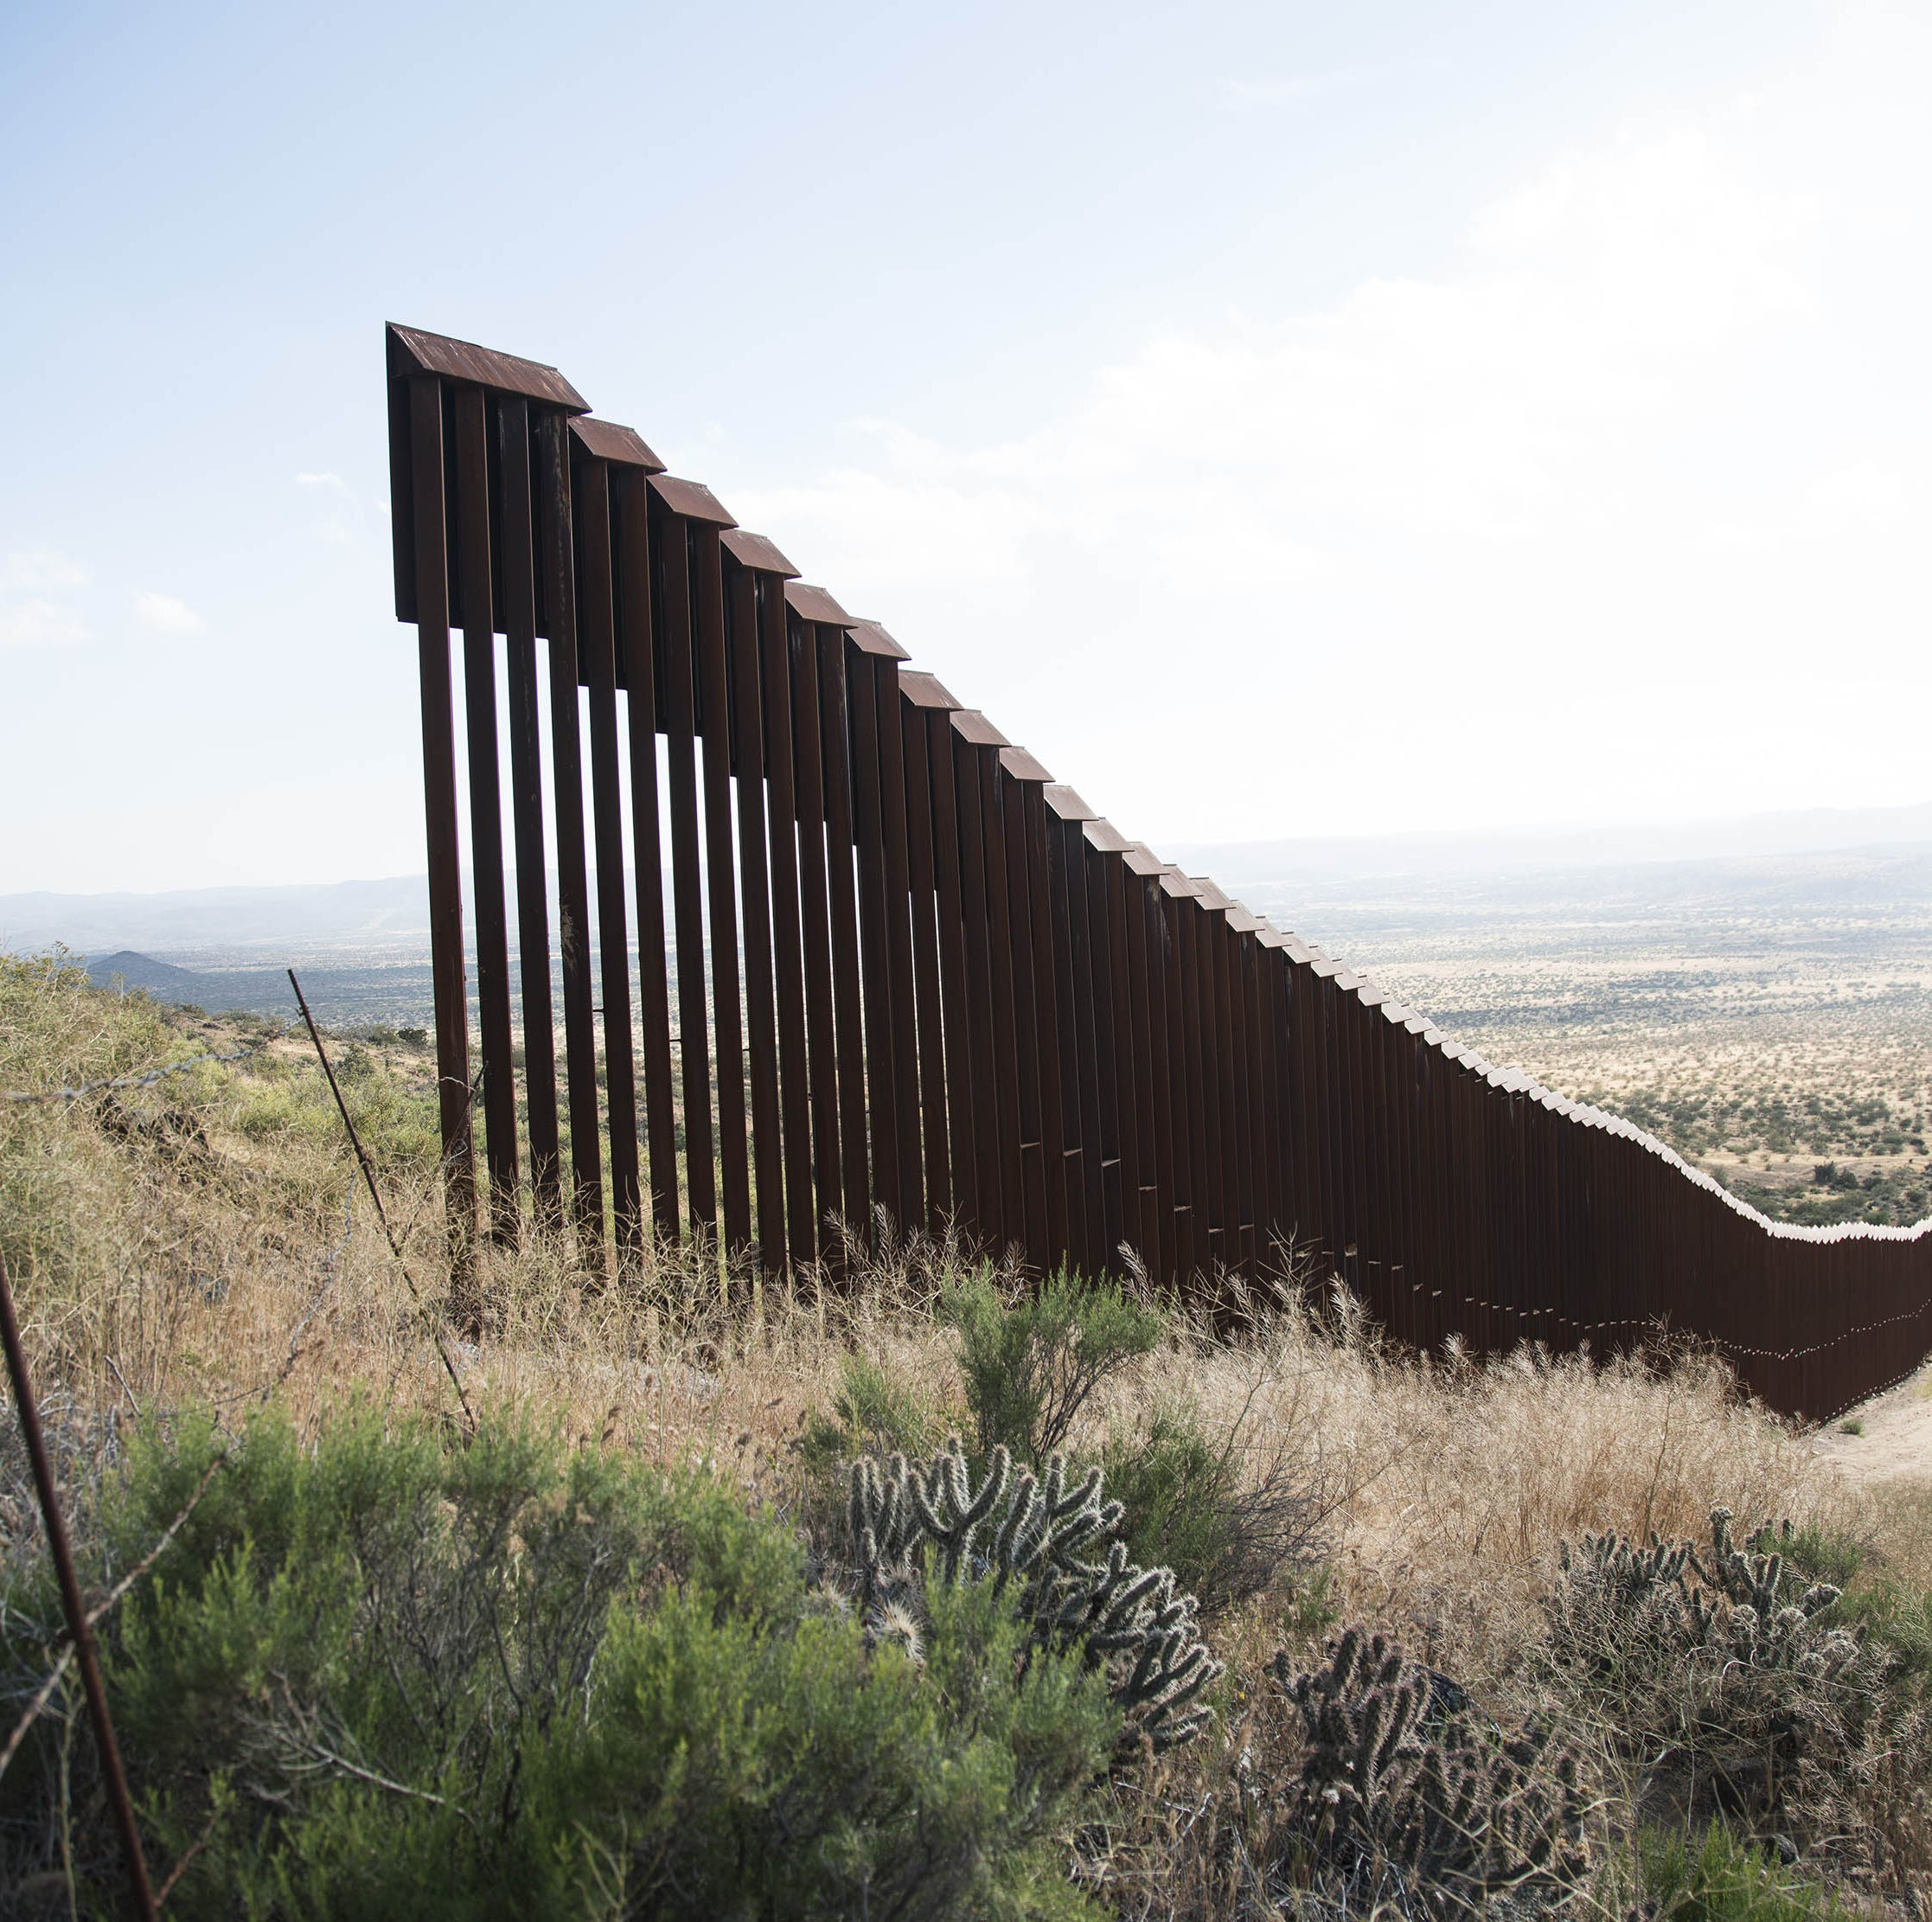 GoFundMe campaign for border wall raises $500K and counting toward $1 billion goal